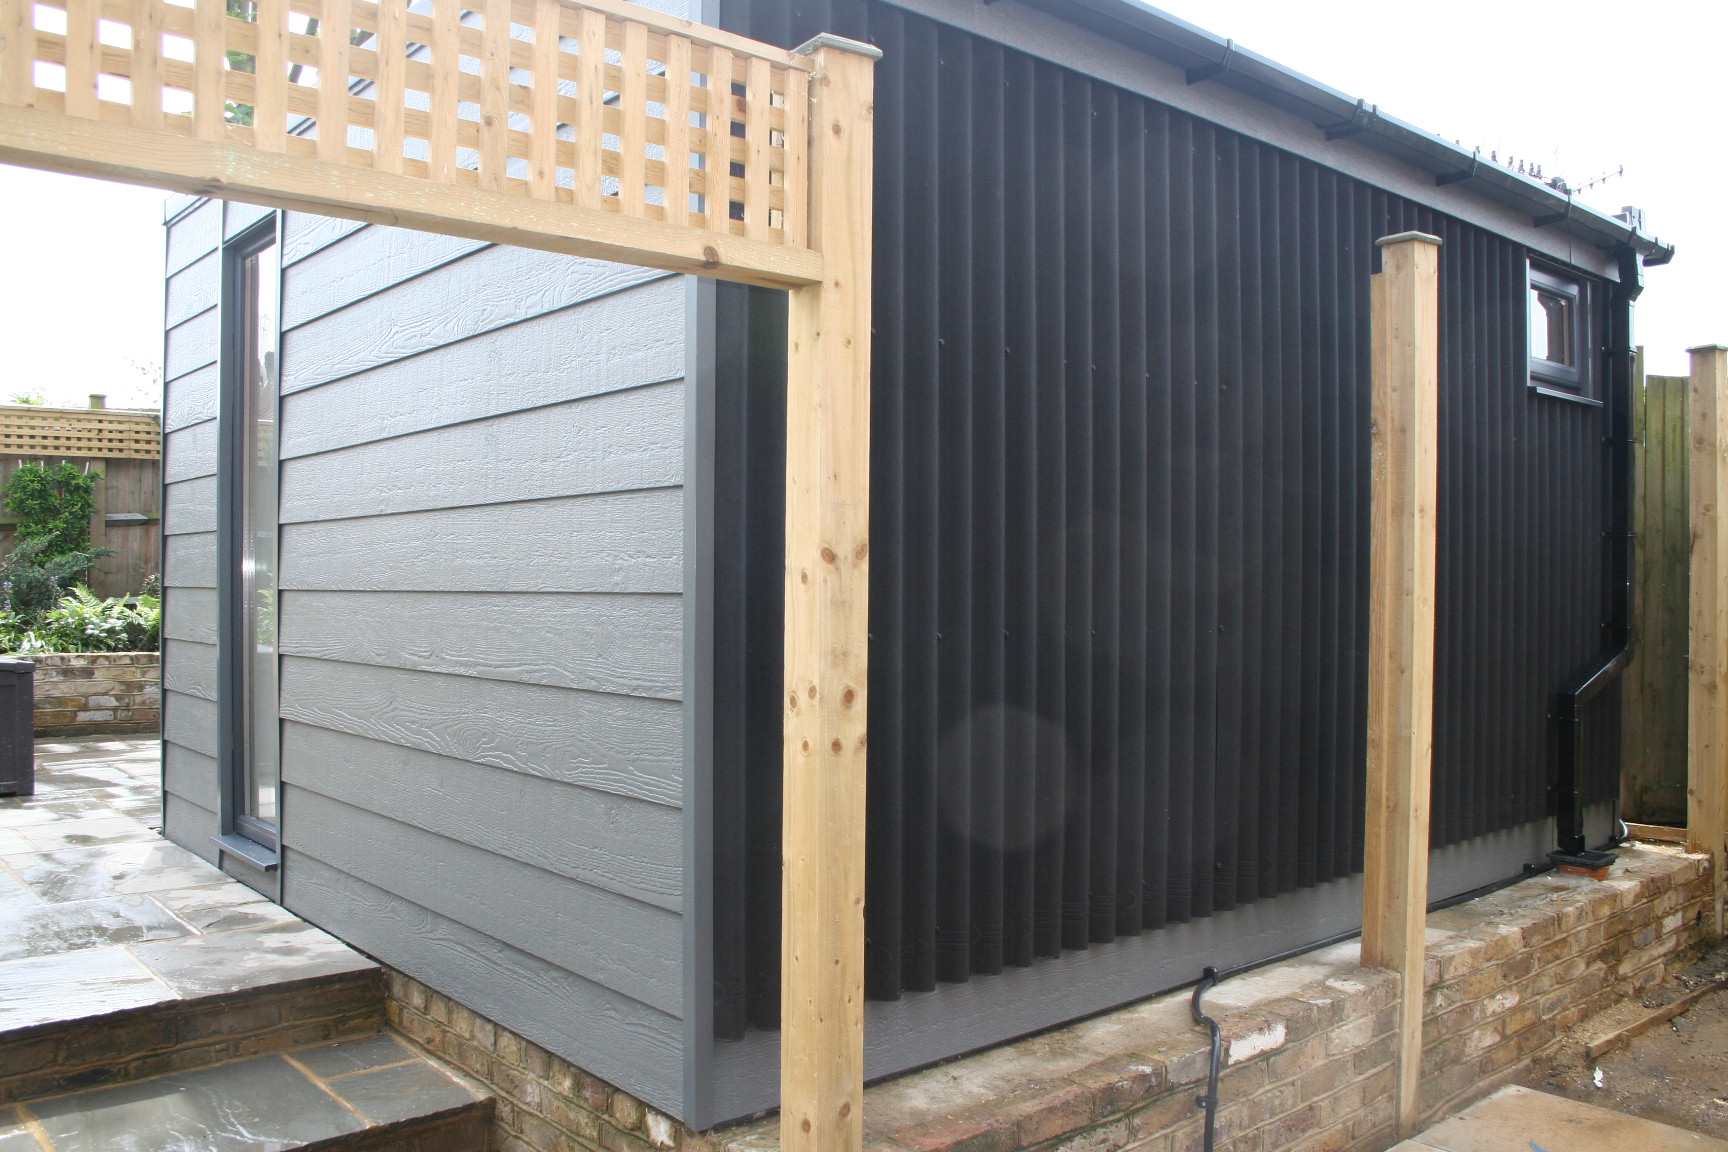 Rear Aspect Weather Board Option - For a large percentage of garden room installs the rear of the building will not be visible in day to day use. This is why we have the option to either clad the whole structure in the cladding of your choice or to use a weatherproof boarding to the rear, reducing the overall install price.